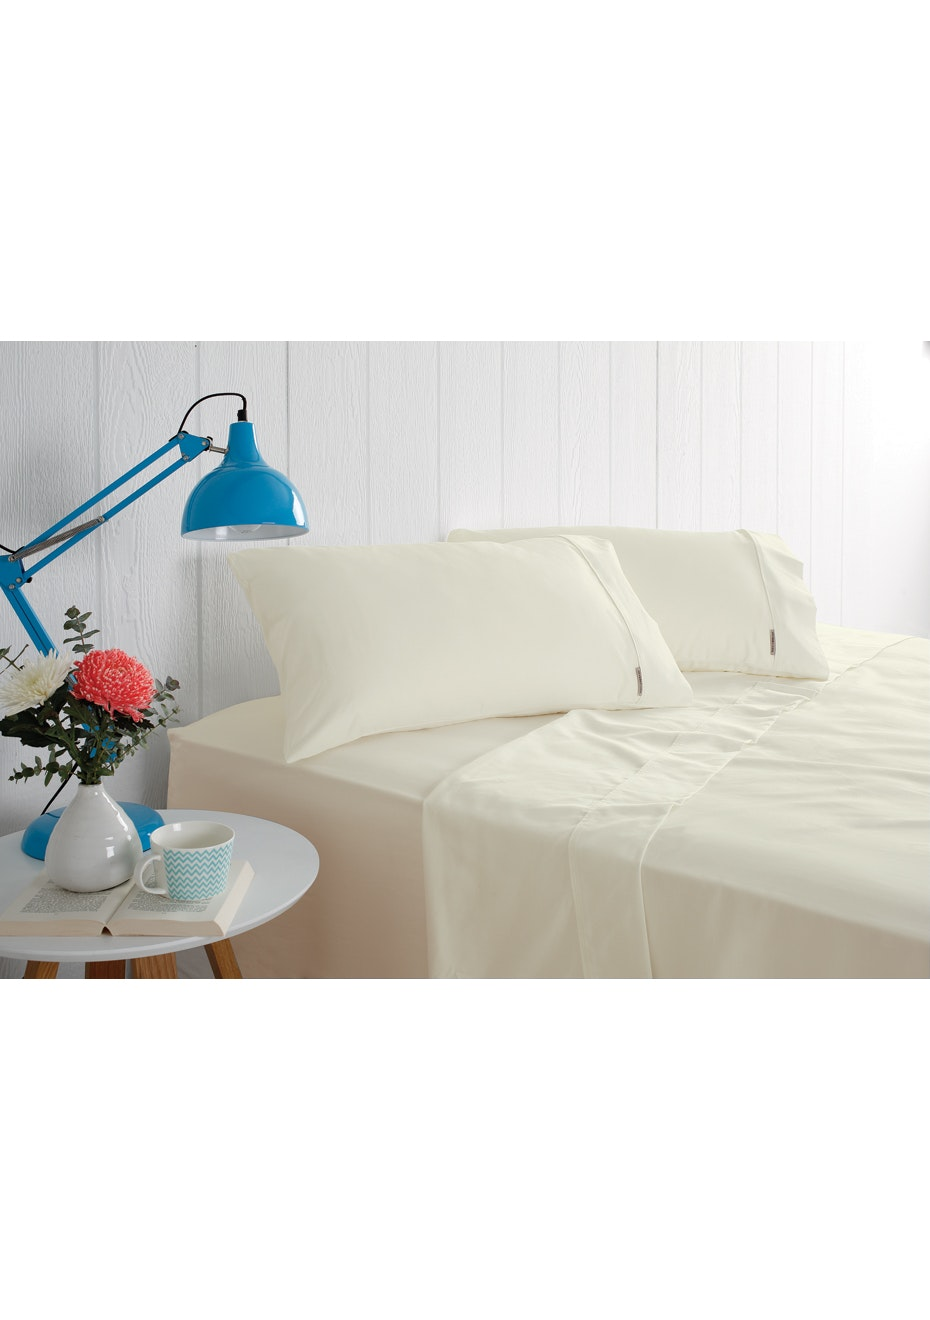 Odyssey Living 1000 Thread Count – Cotton Rich Sheet Sets -Ivory - King Bed